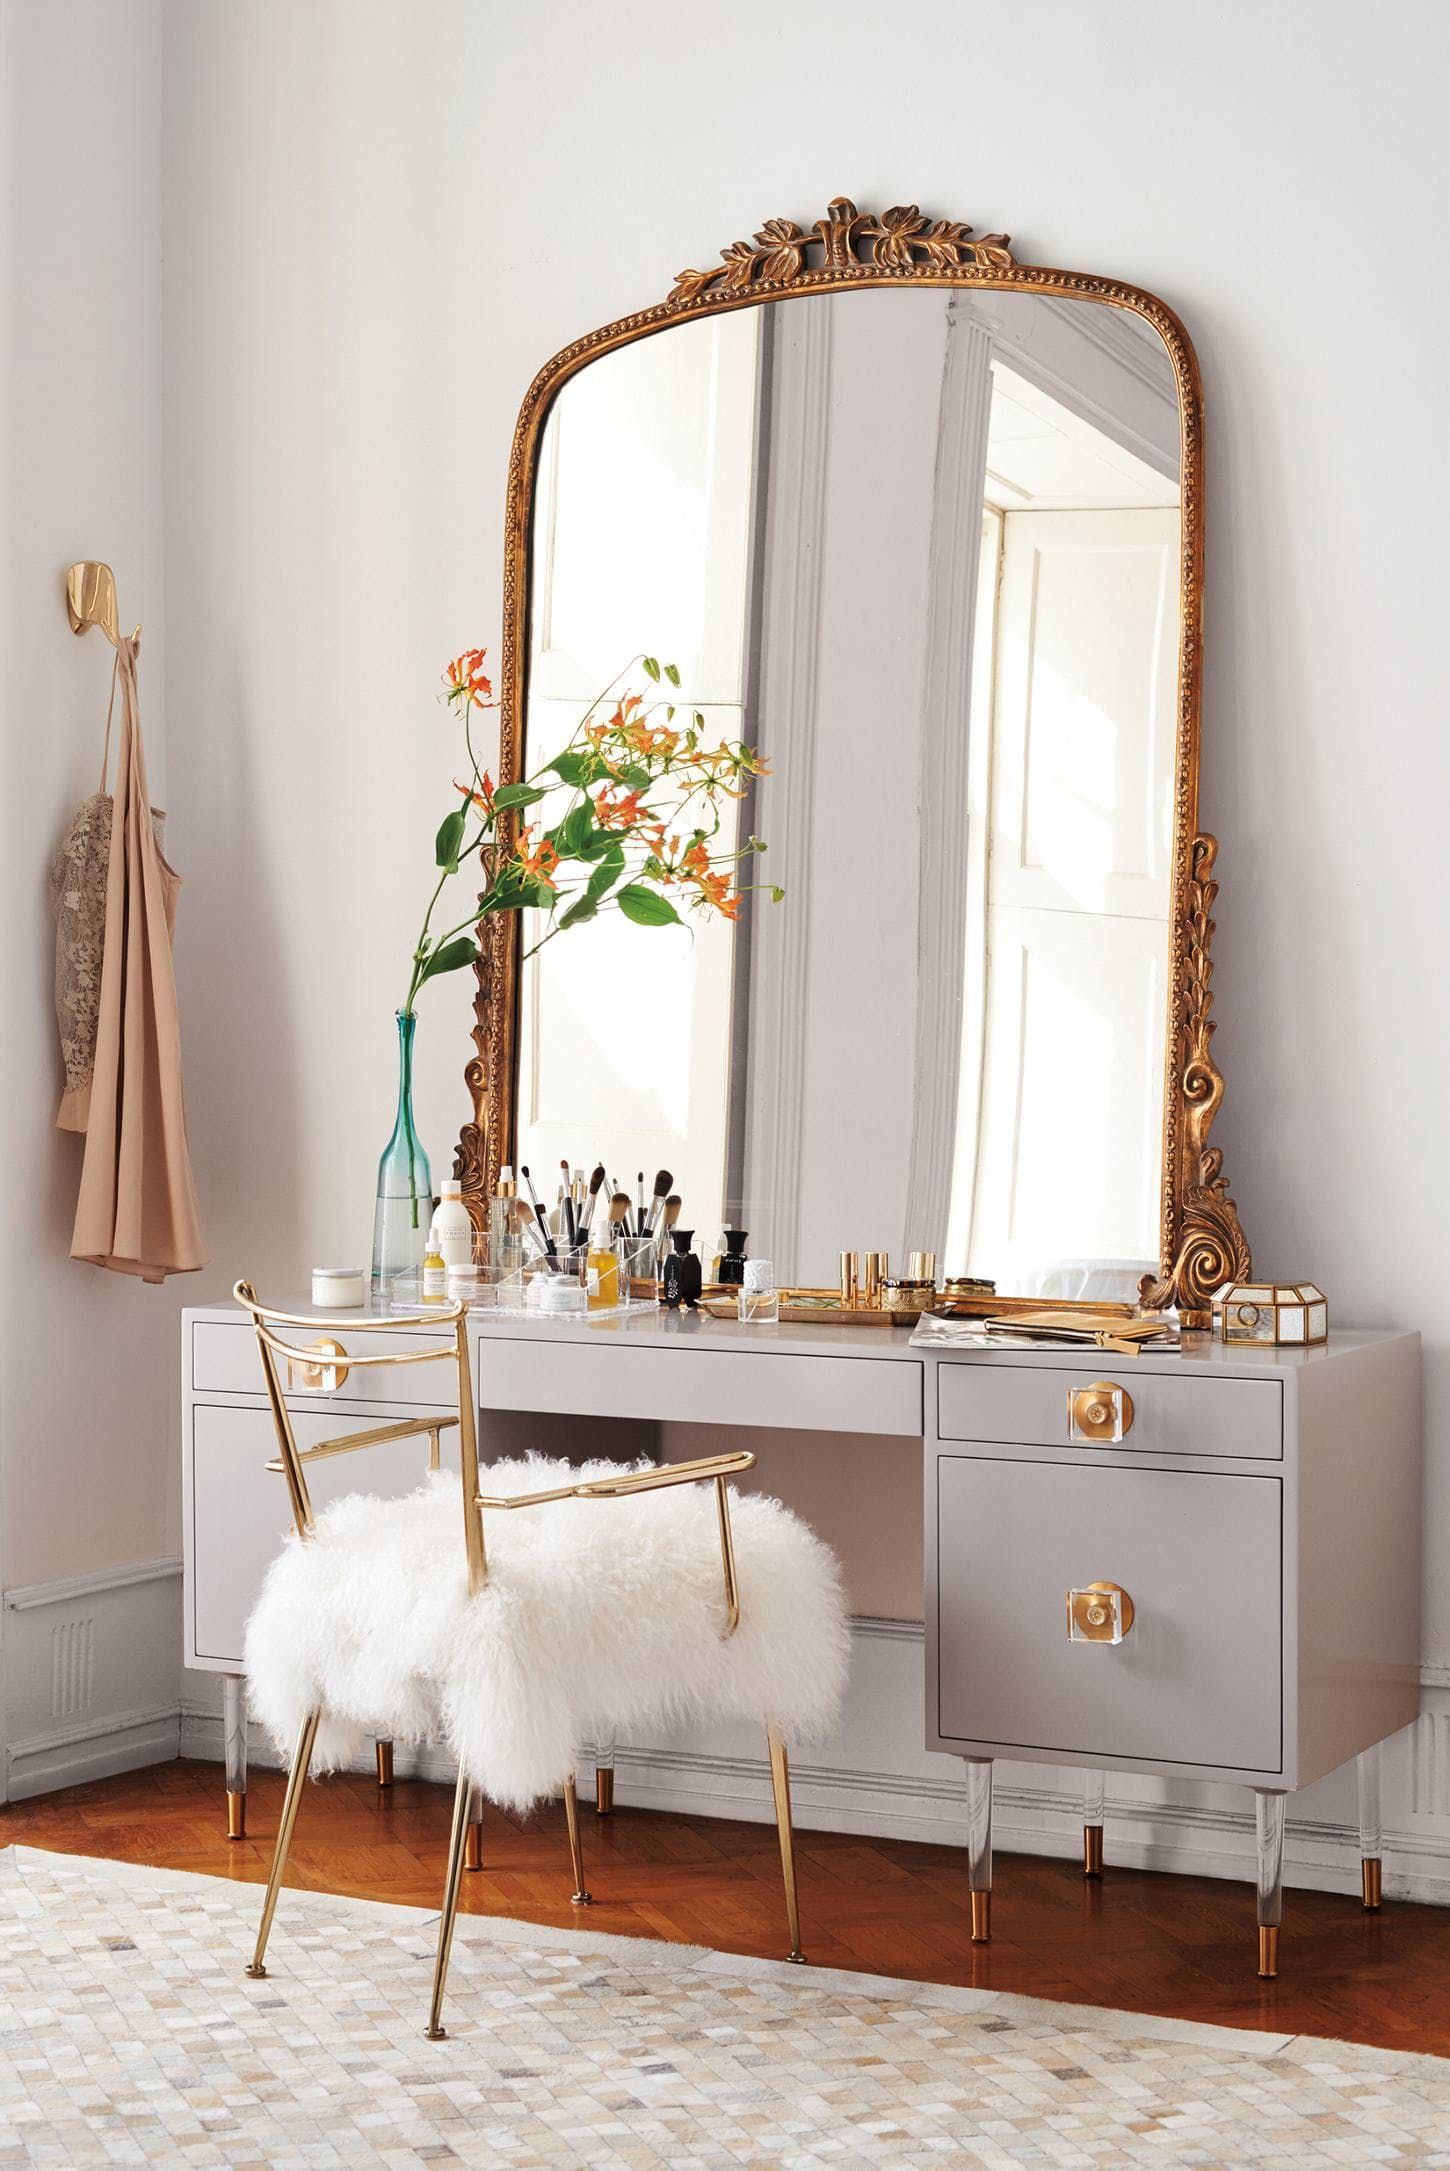 13 Some Of The Coolest Tricks Of How To Improve Bedroom Vanity intended for Modern Bedroom Vanity